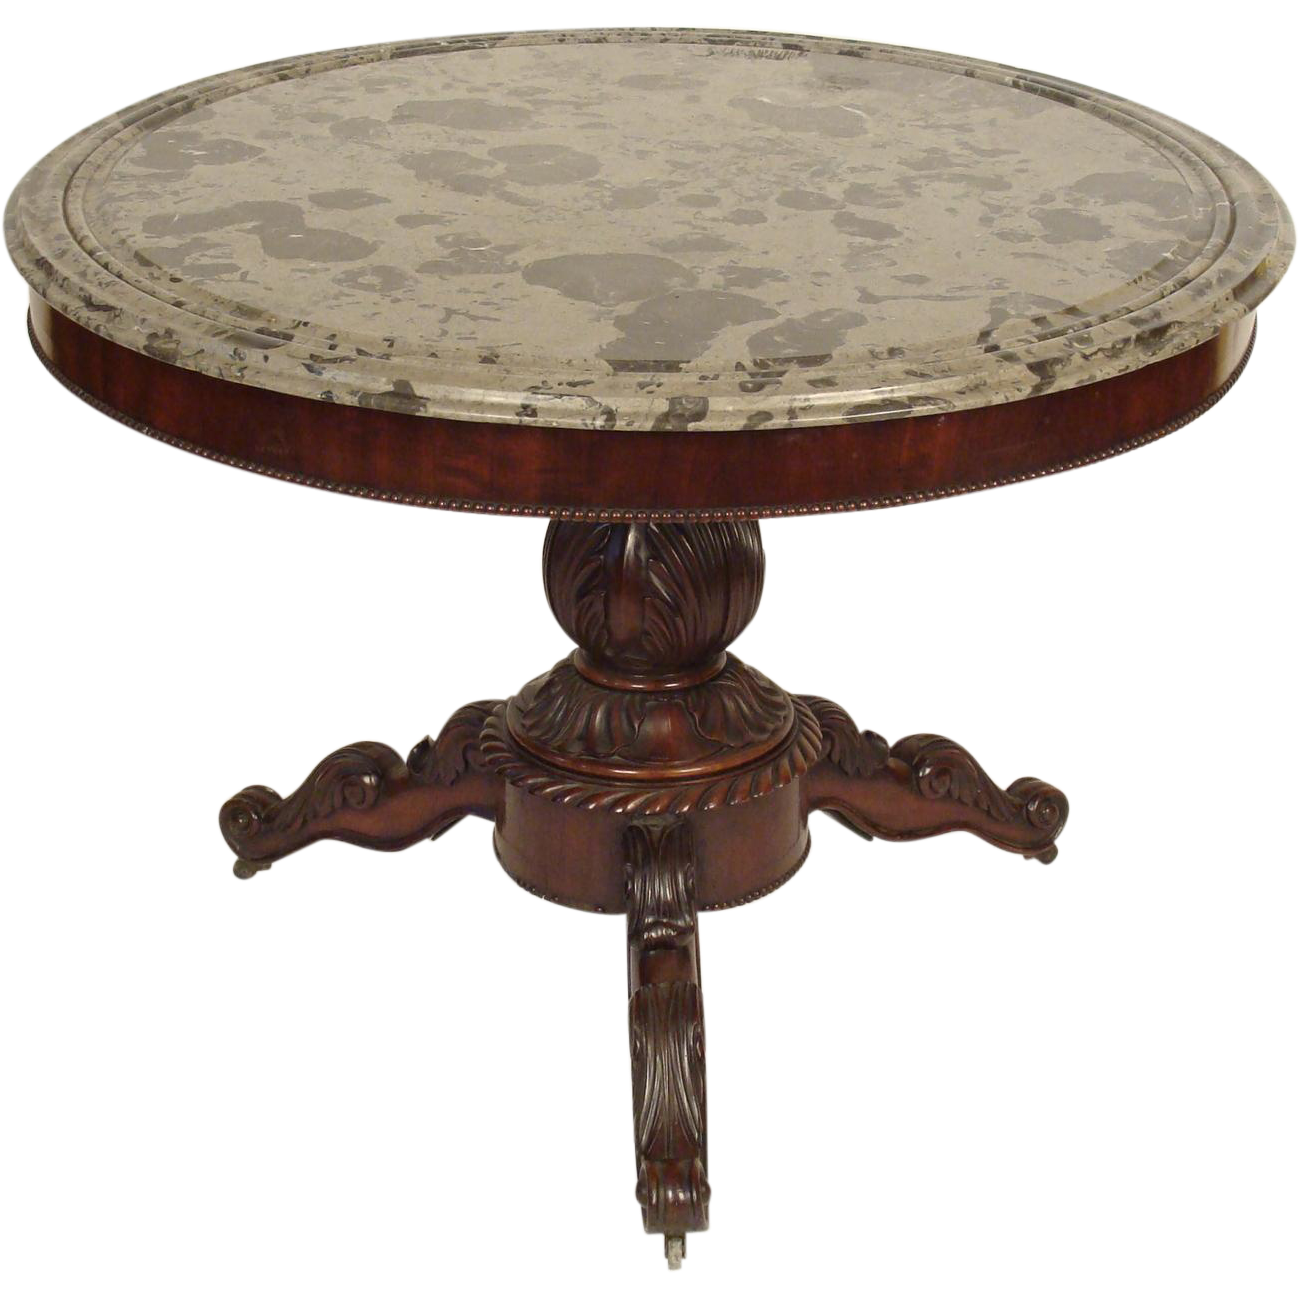 Louis philippe center table from nicholsonsantiques on for Table ronde louis philippe